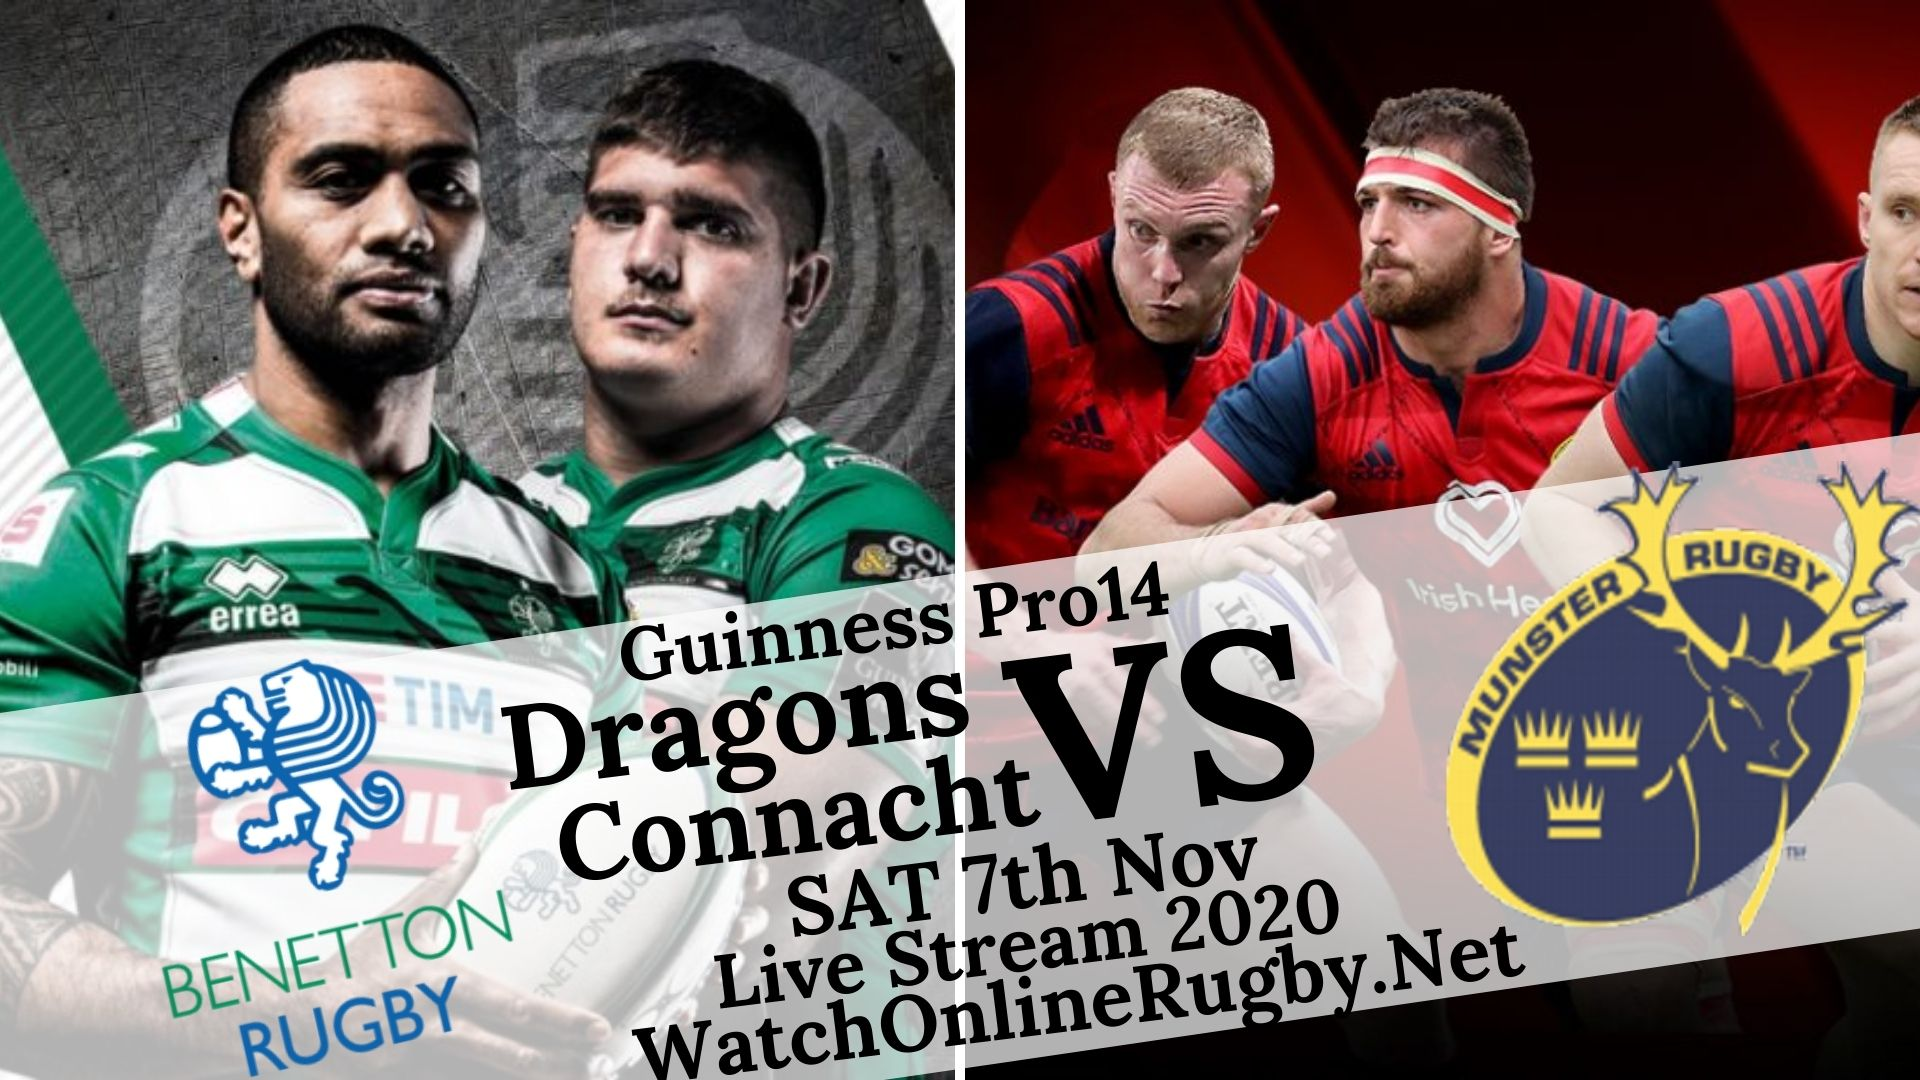 connacht-vs-dragons-rugby-live